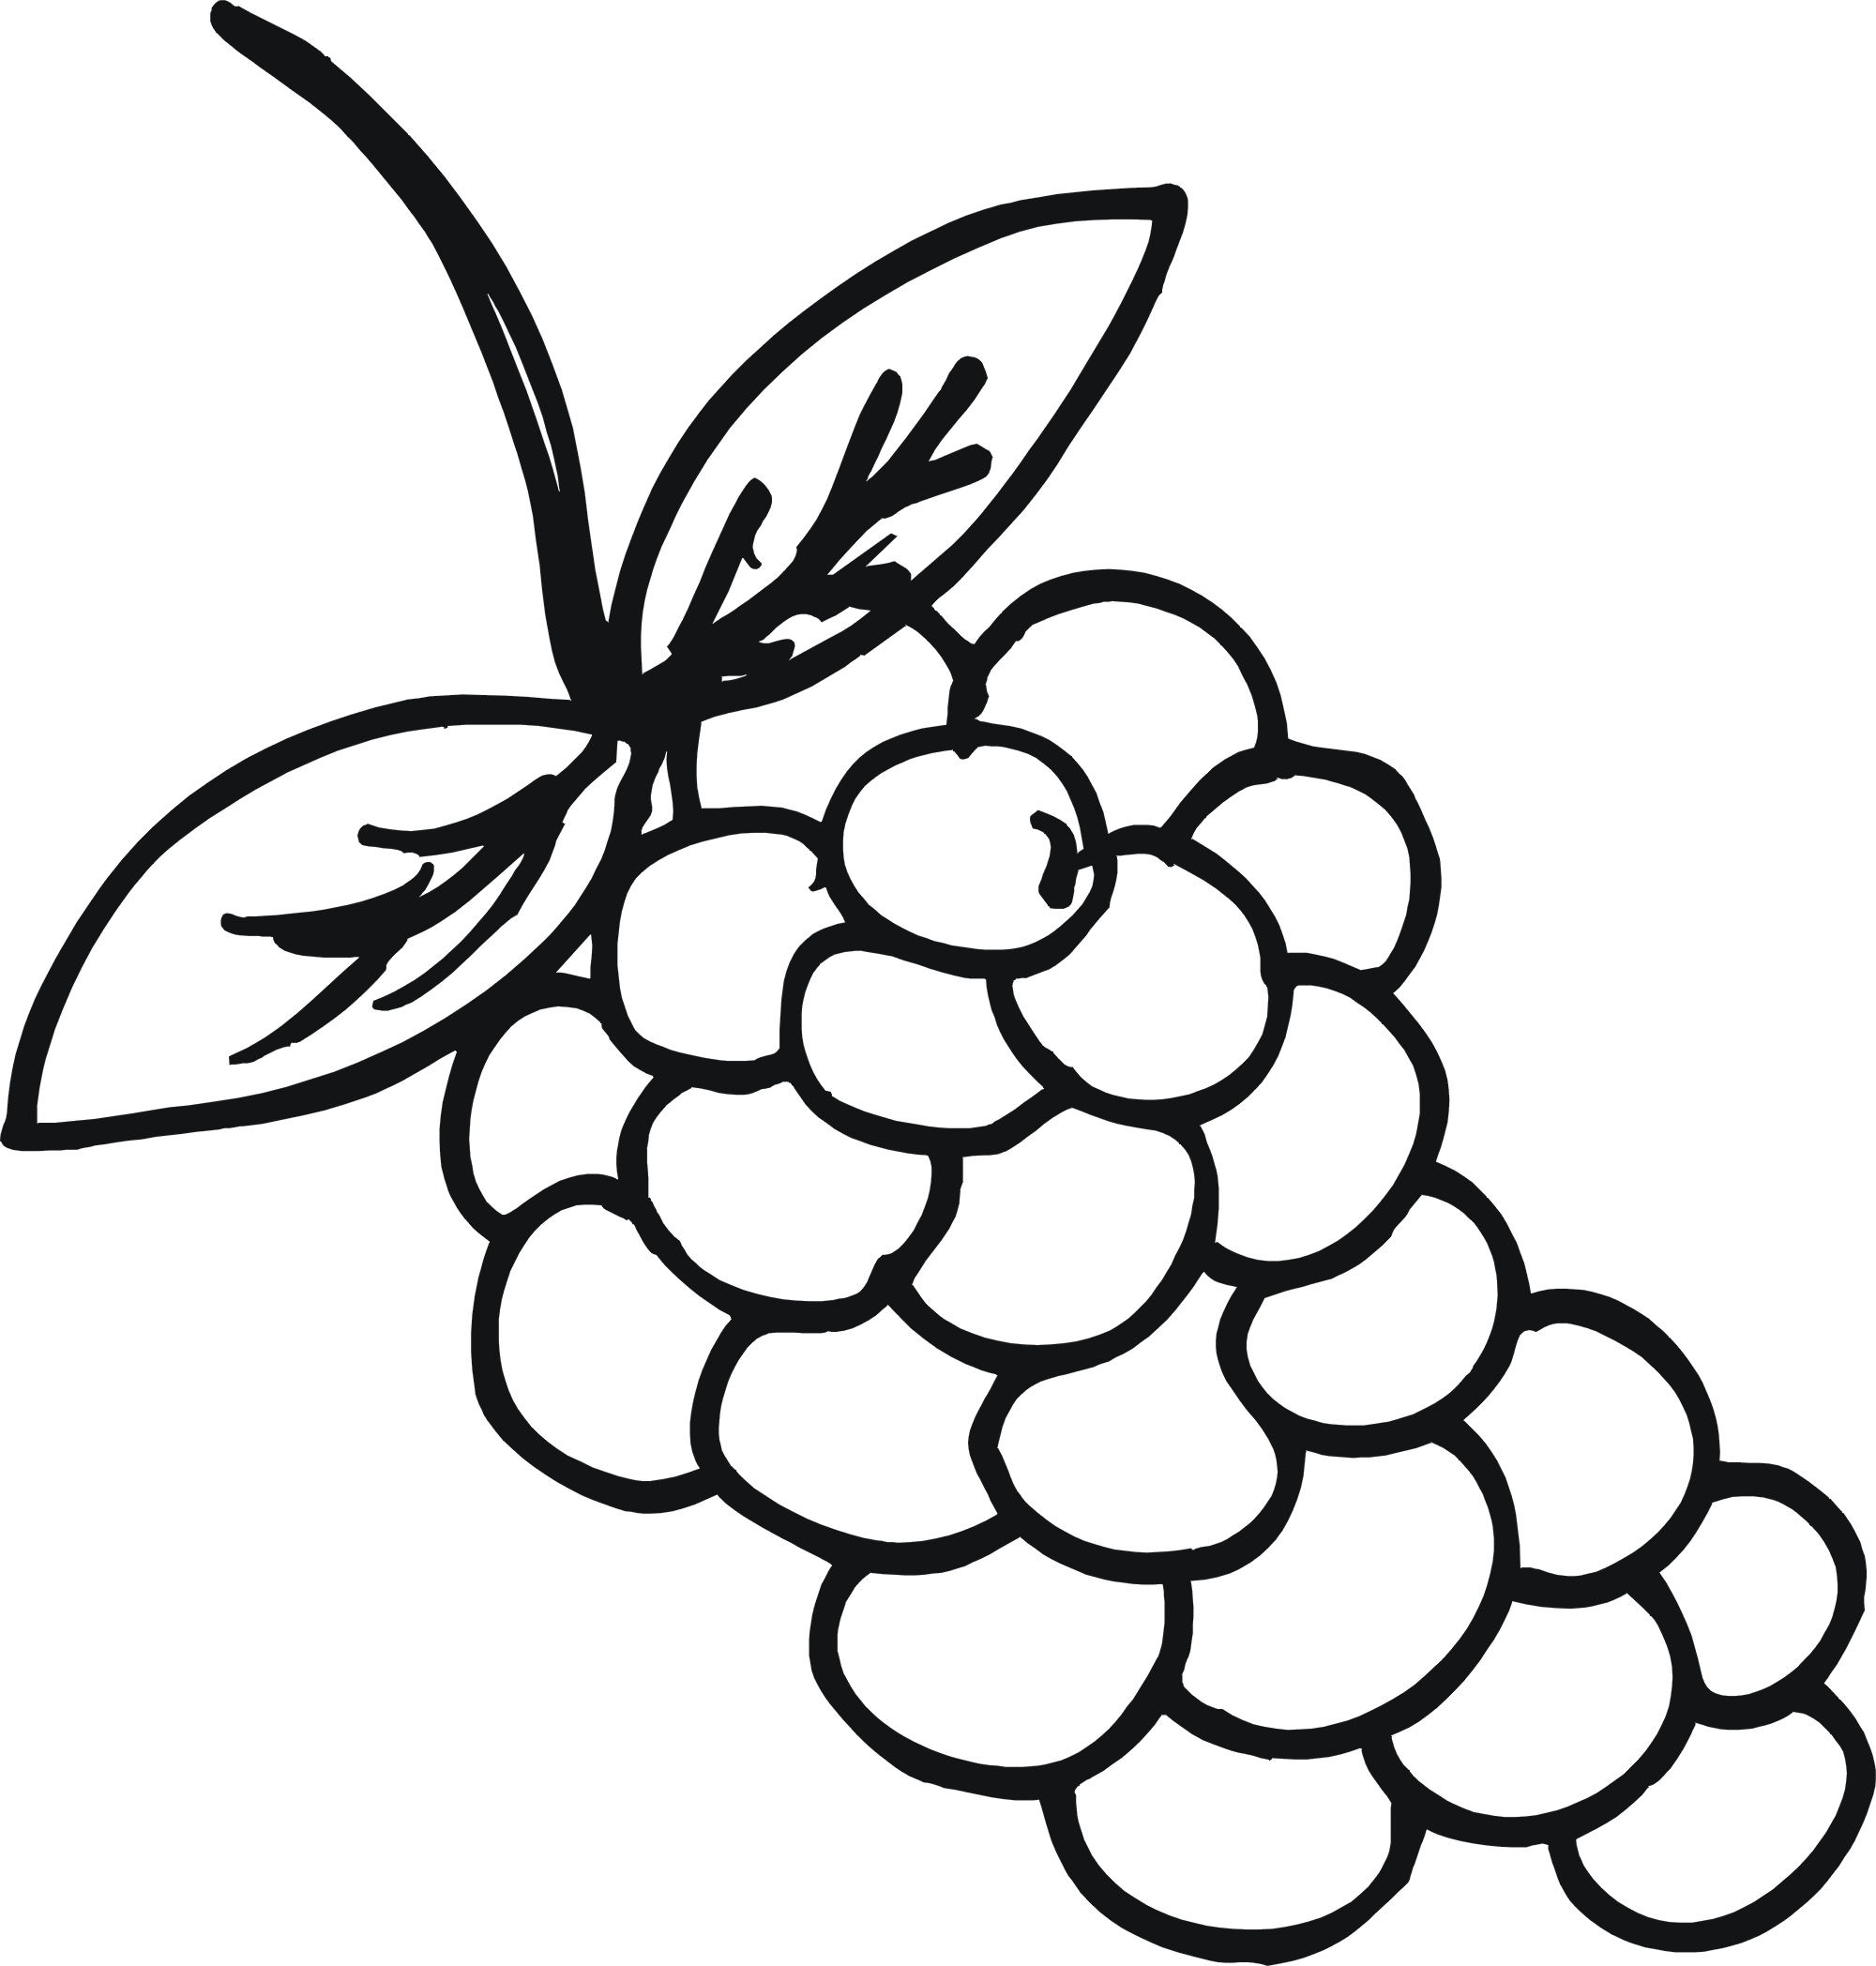 coloring food pages free easy to print food coloring pages tulamama pages coloring food